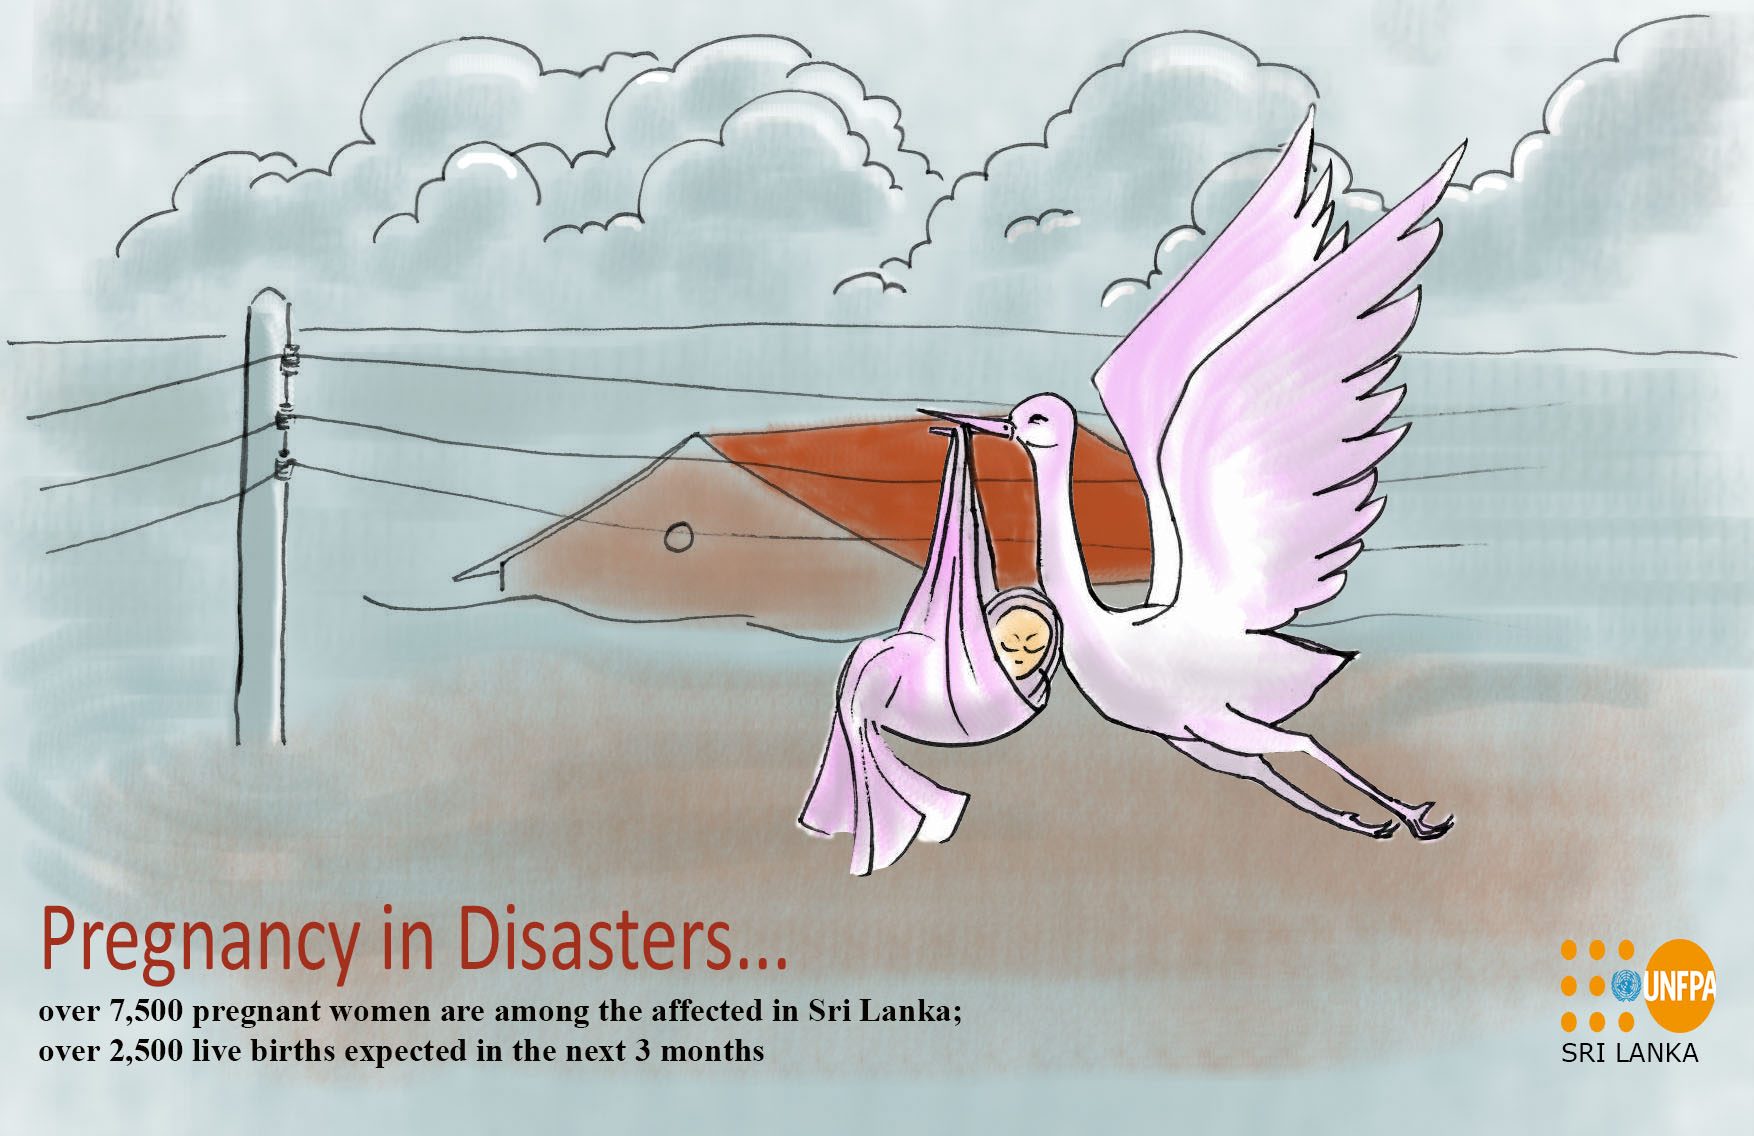 Maternal health during disasters